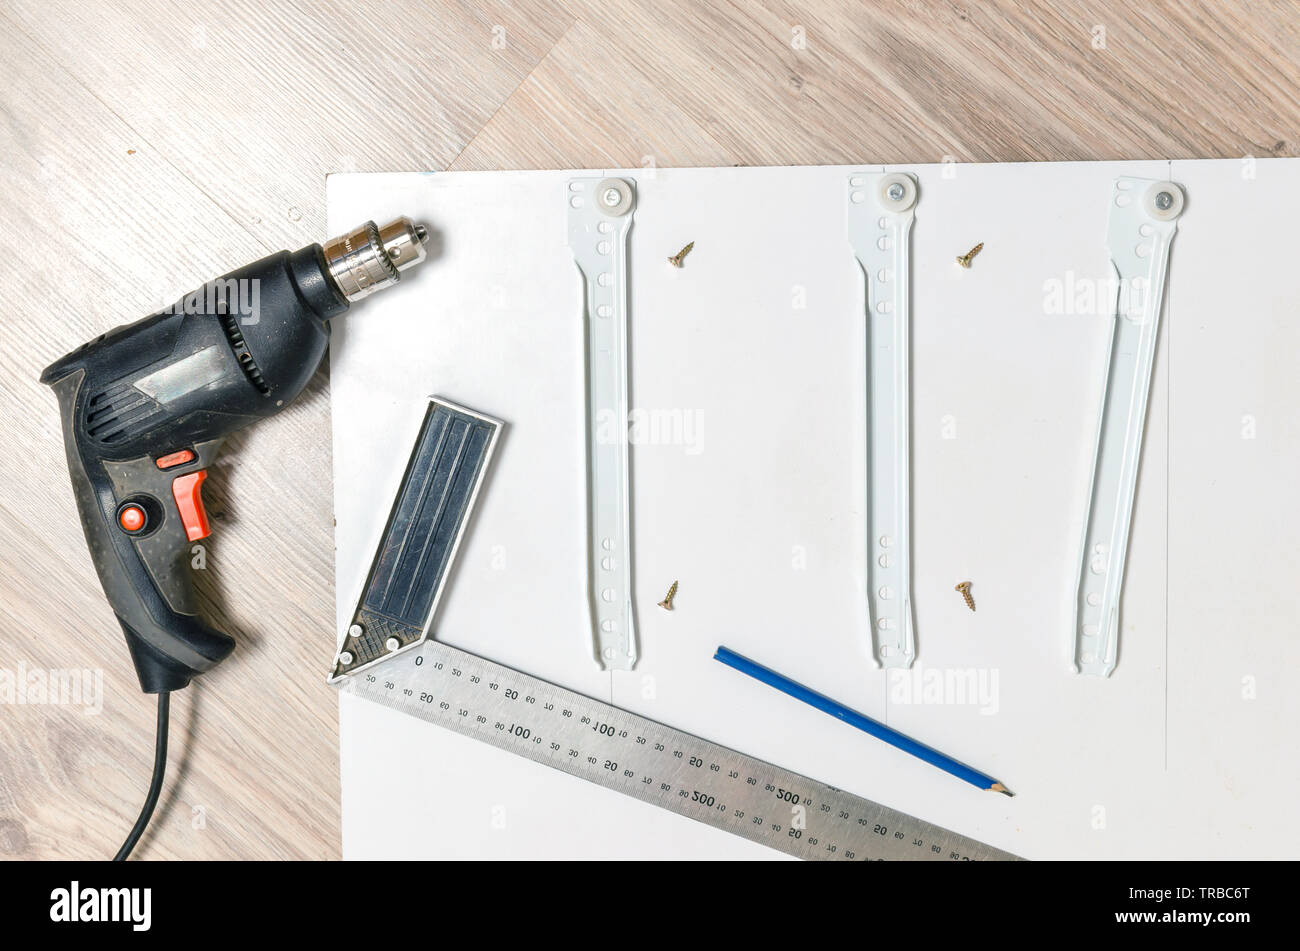 Drill,metallic measuring area, the item of furniture with a stand marked with a pencil furniture guides. - Stock Image